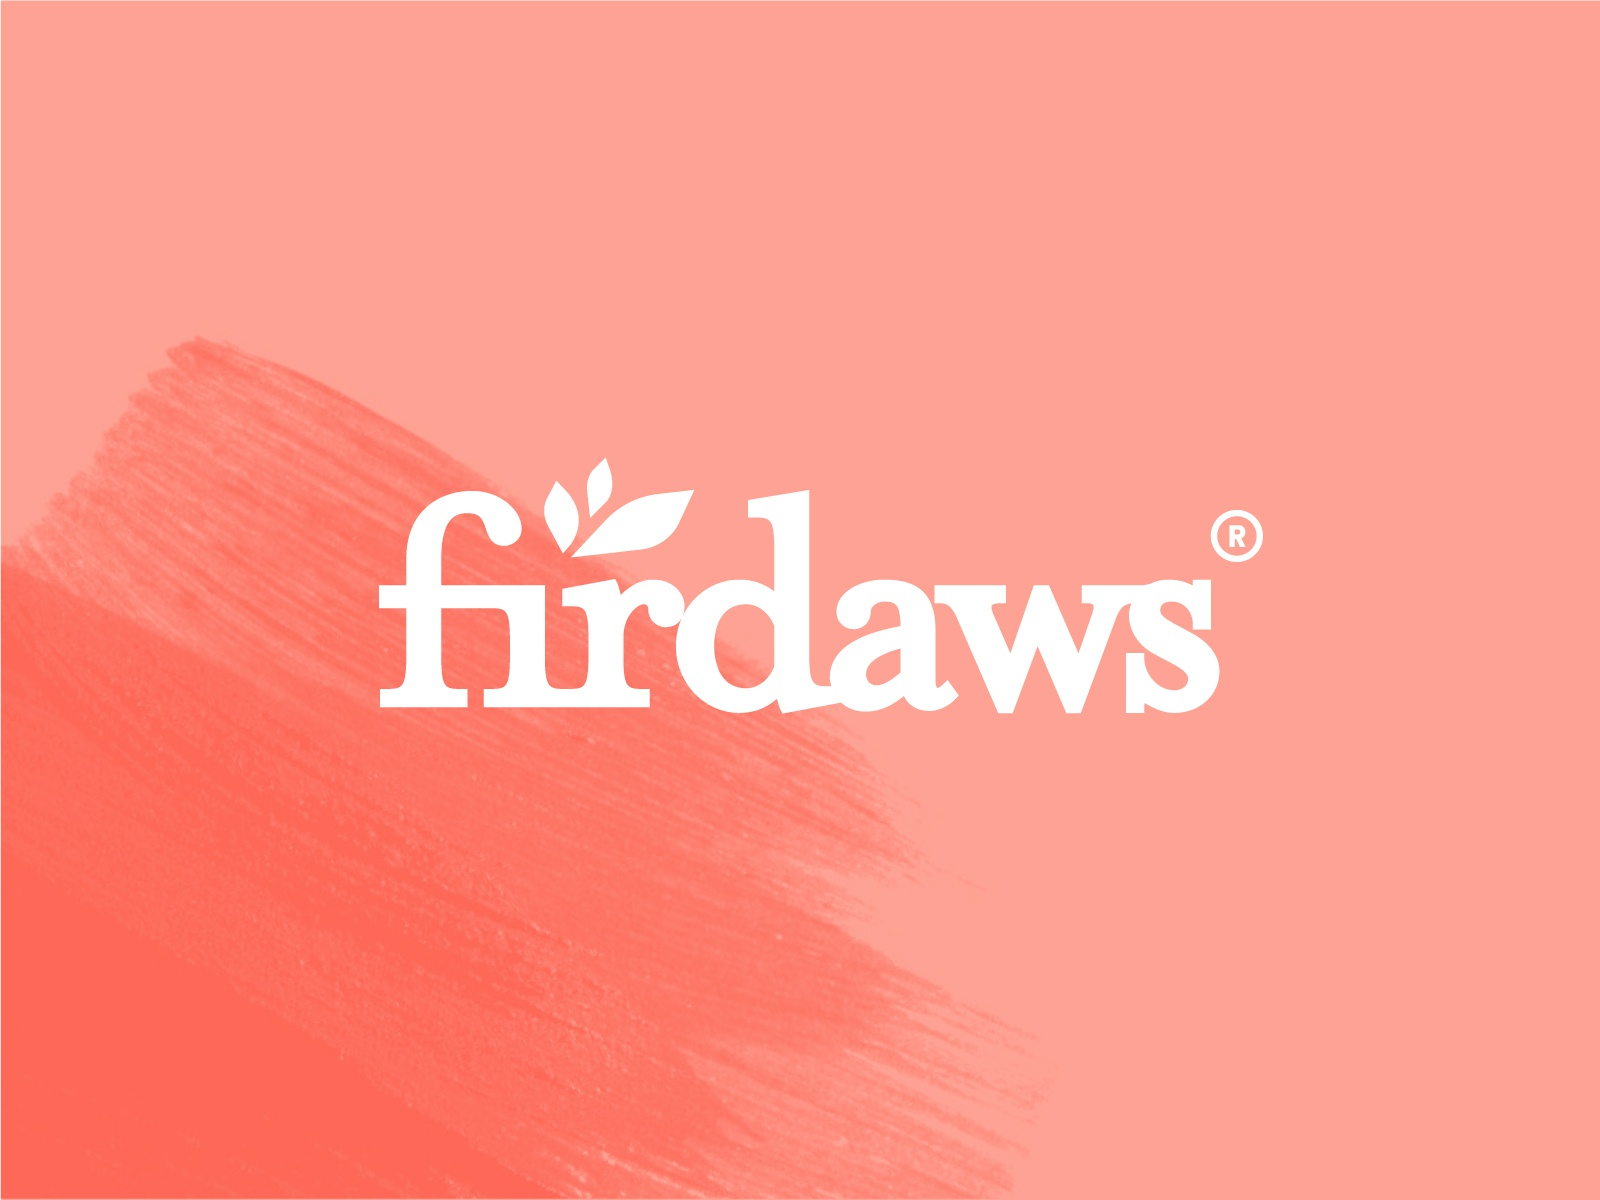 Firdaws logo